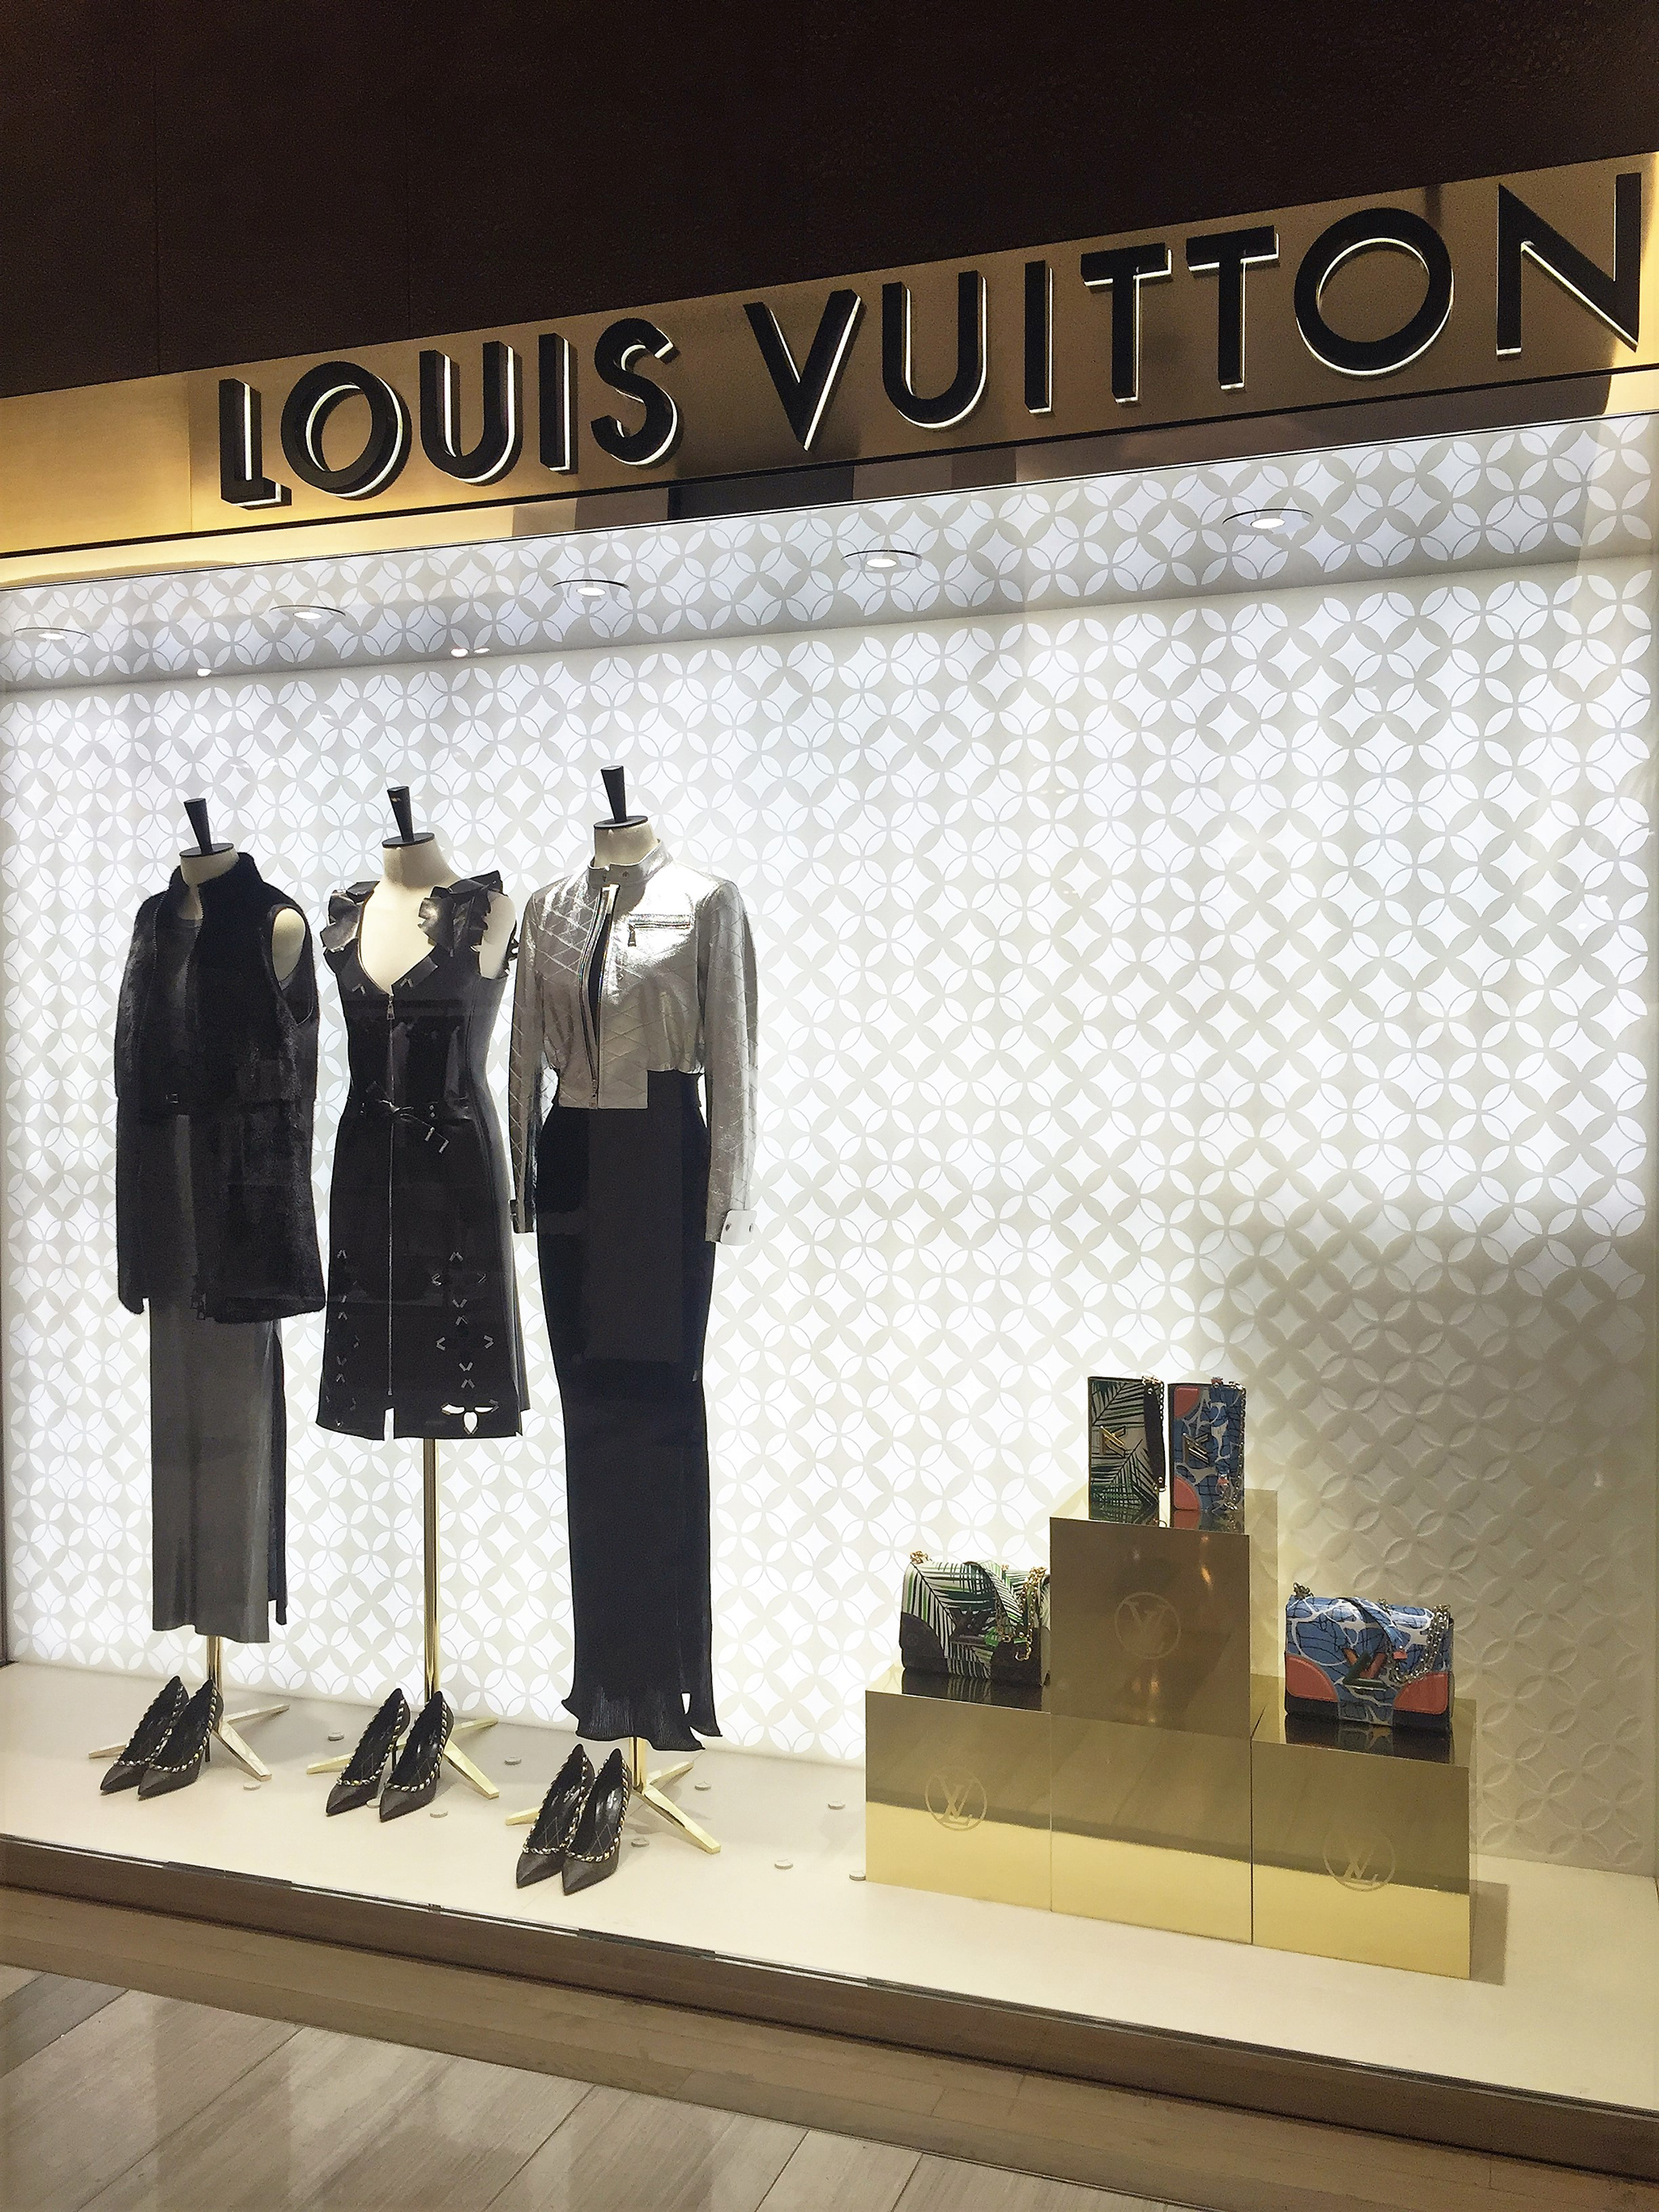 Louis-Vuitton-Saks-5th-Ave-01